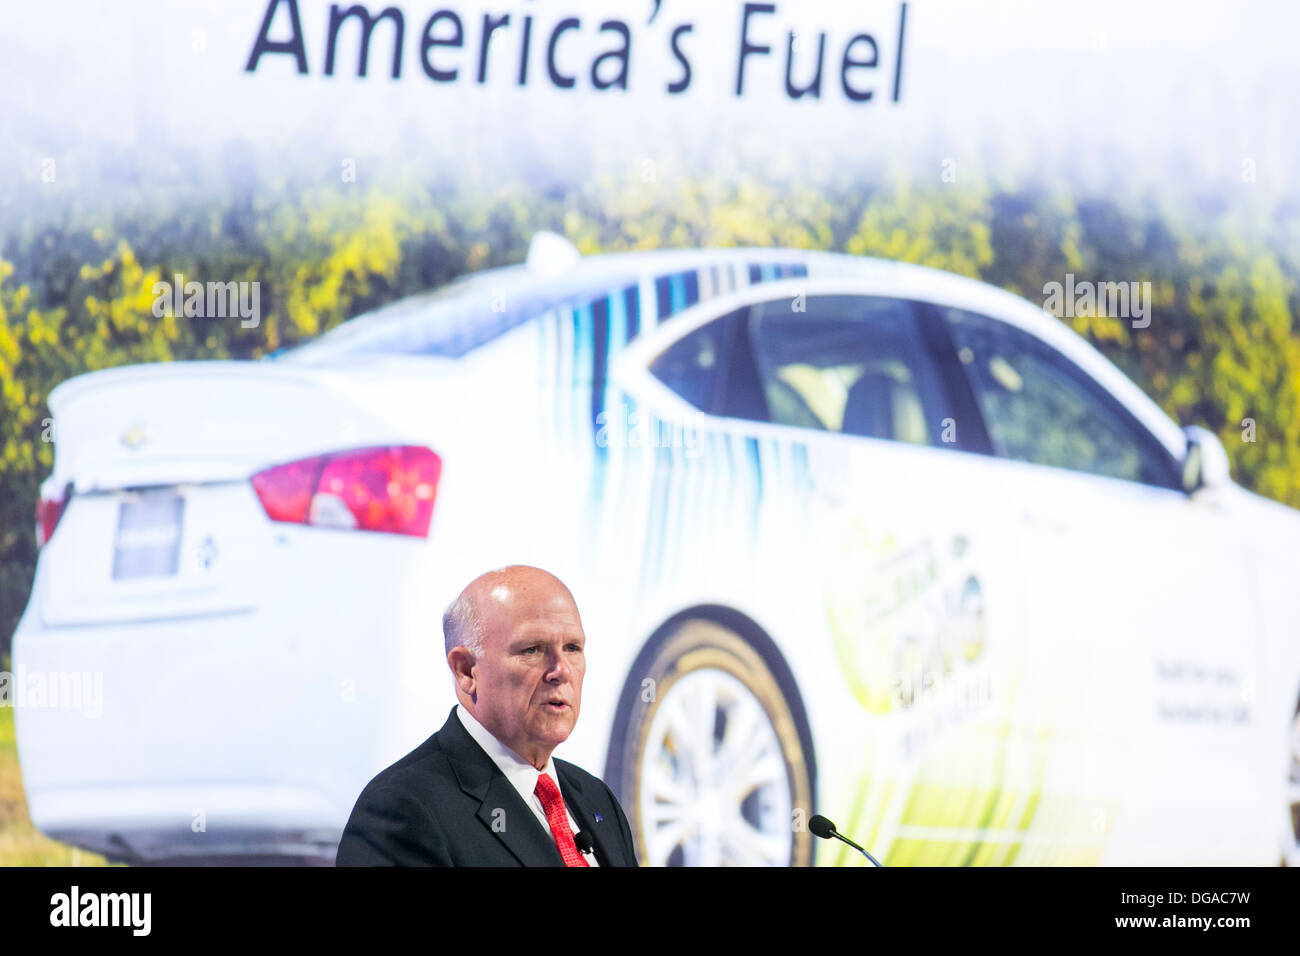 Daniel Akerson Chairman and Chief Executive Officer of General Motors (GM).  - Stock Image